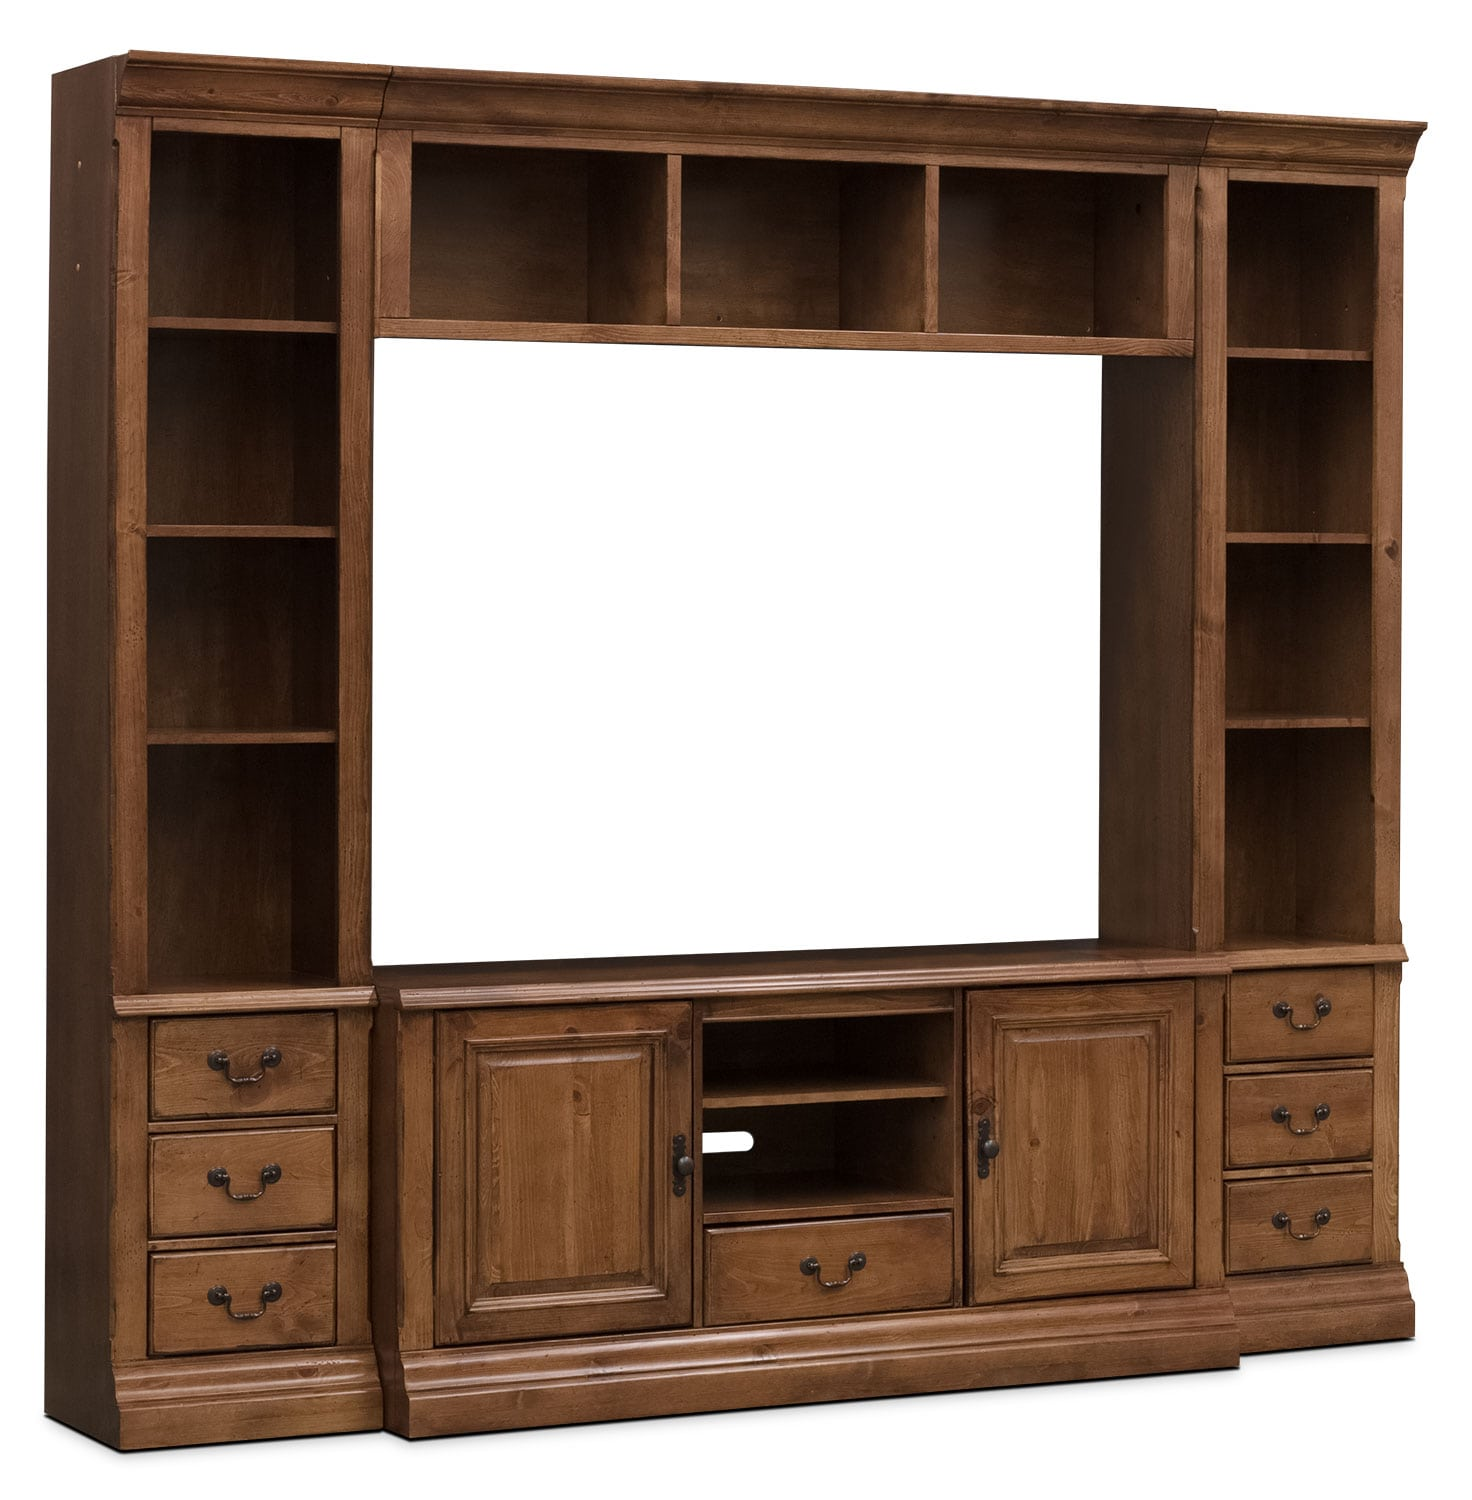 "Edgewood 4-Piece Bookcase Entertainment Centre with 60"" TV Opening"